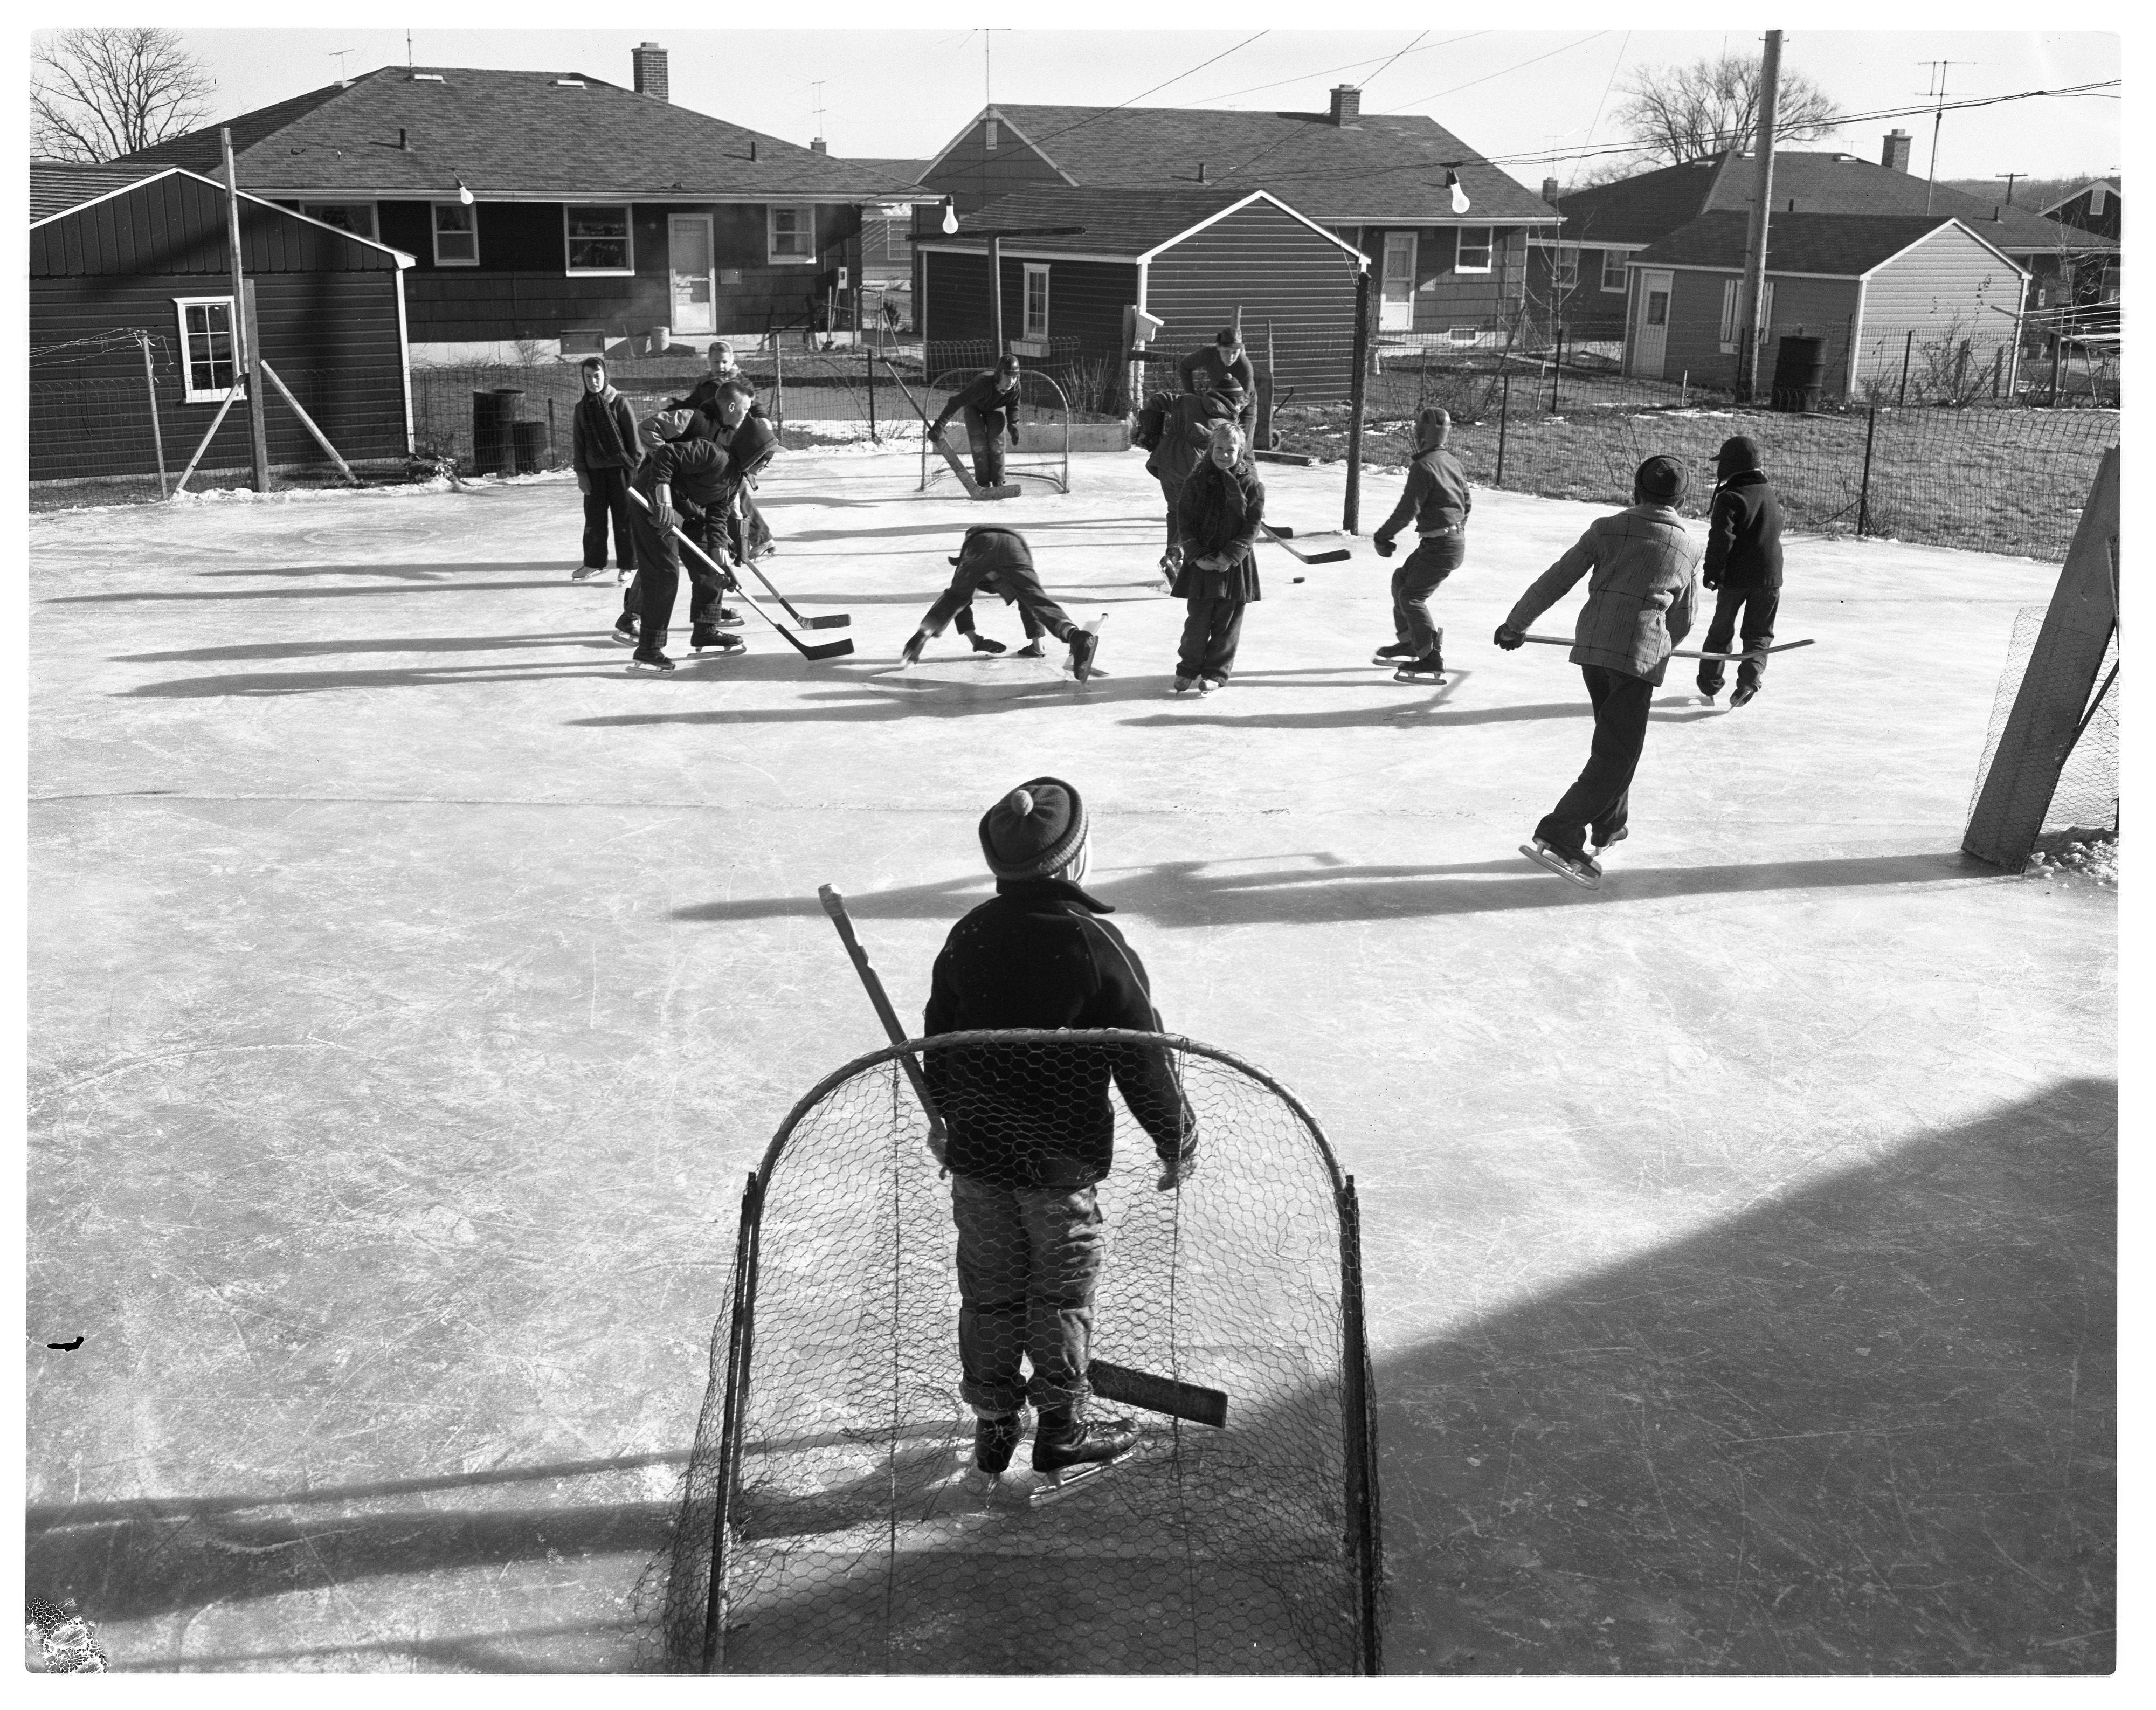 Pickup Hockey On Archie Kennedy's Backyard Ice Rink, January 1958 image